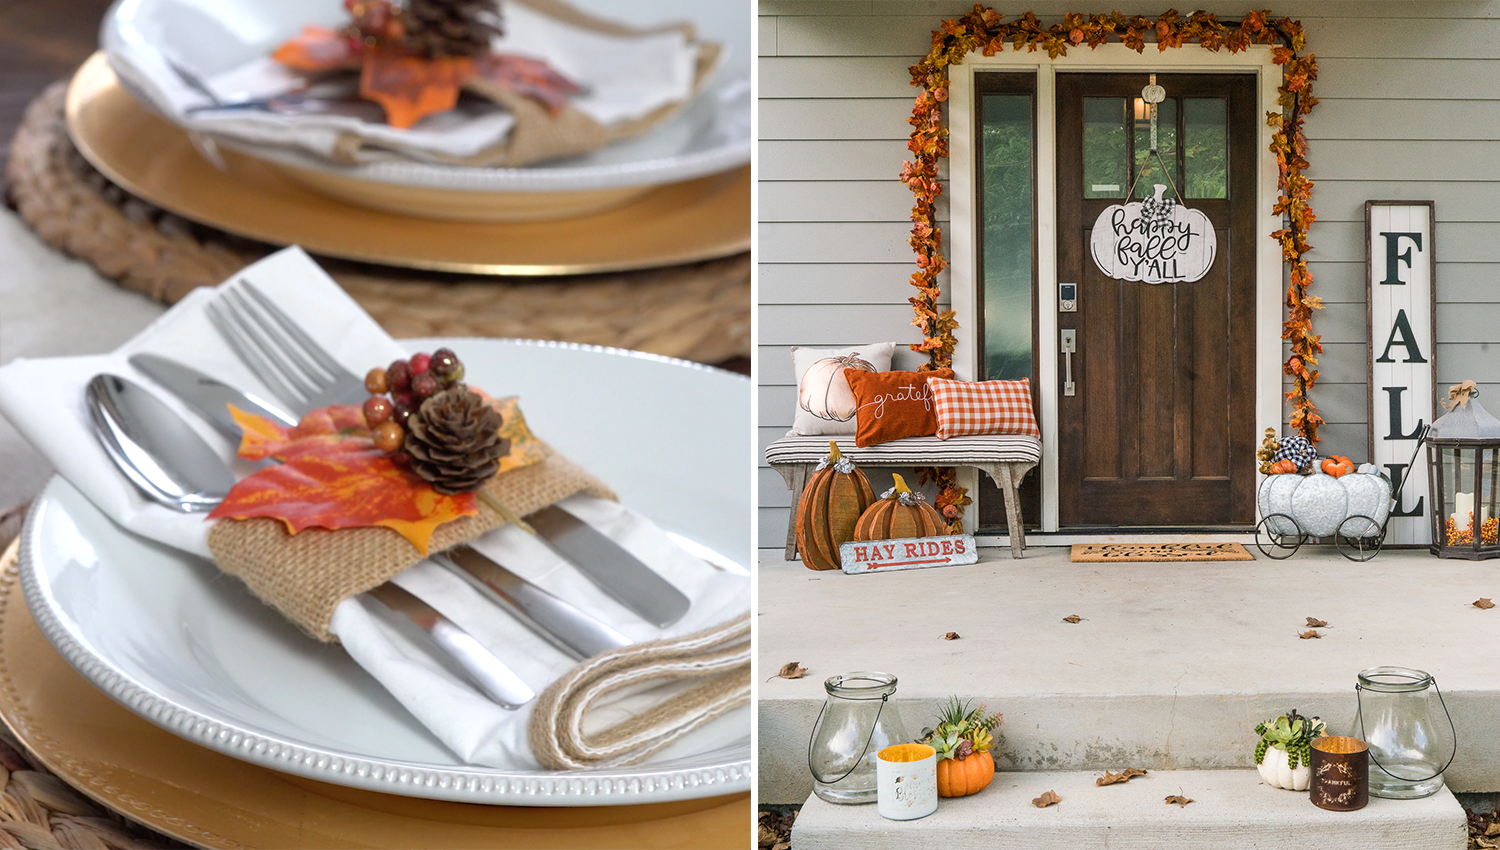 image of a DIY napkin ring holder and a front porch that Parachute Media decorated for a Kirkland's video shoot